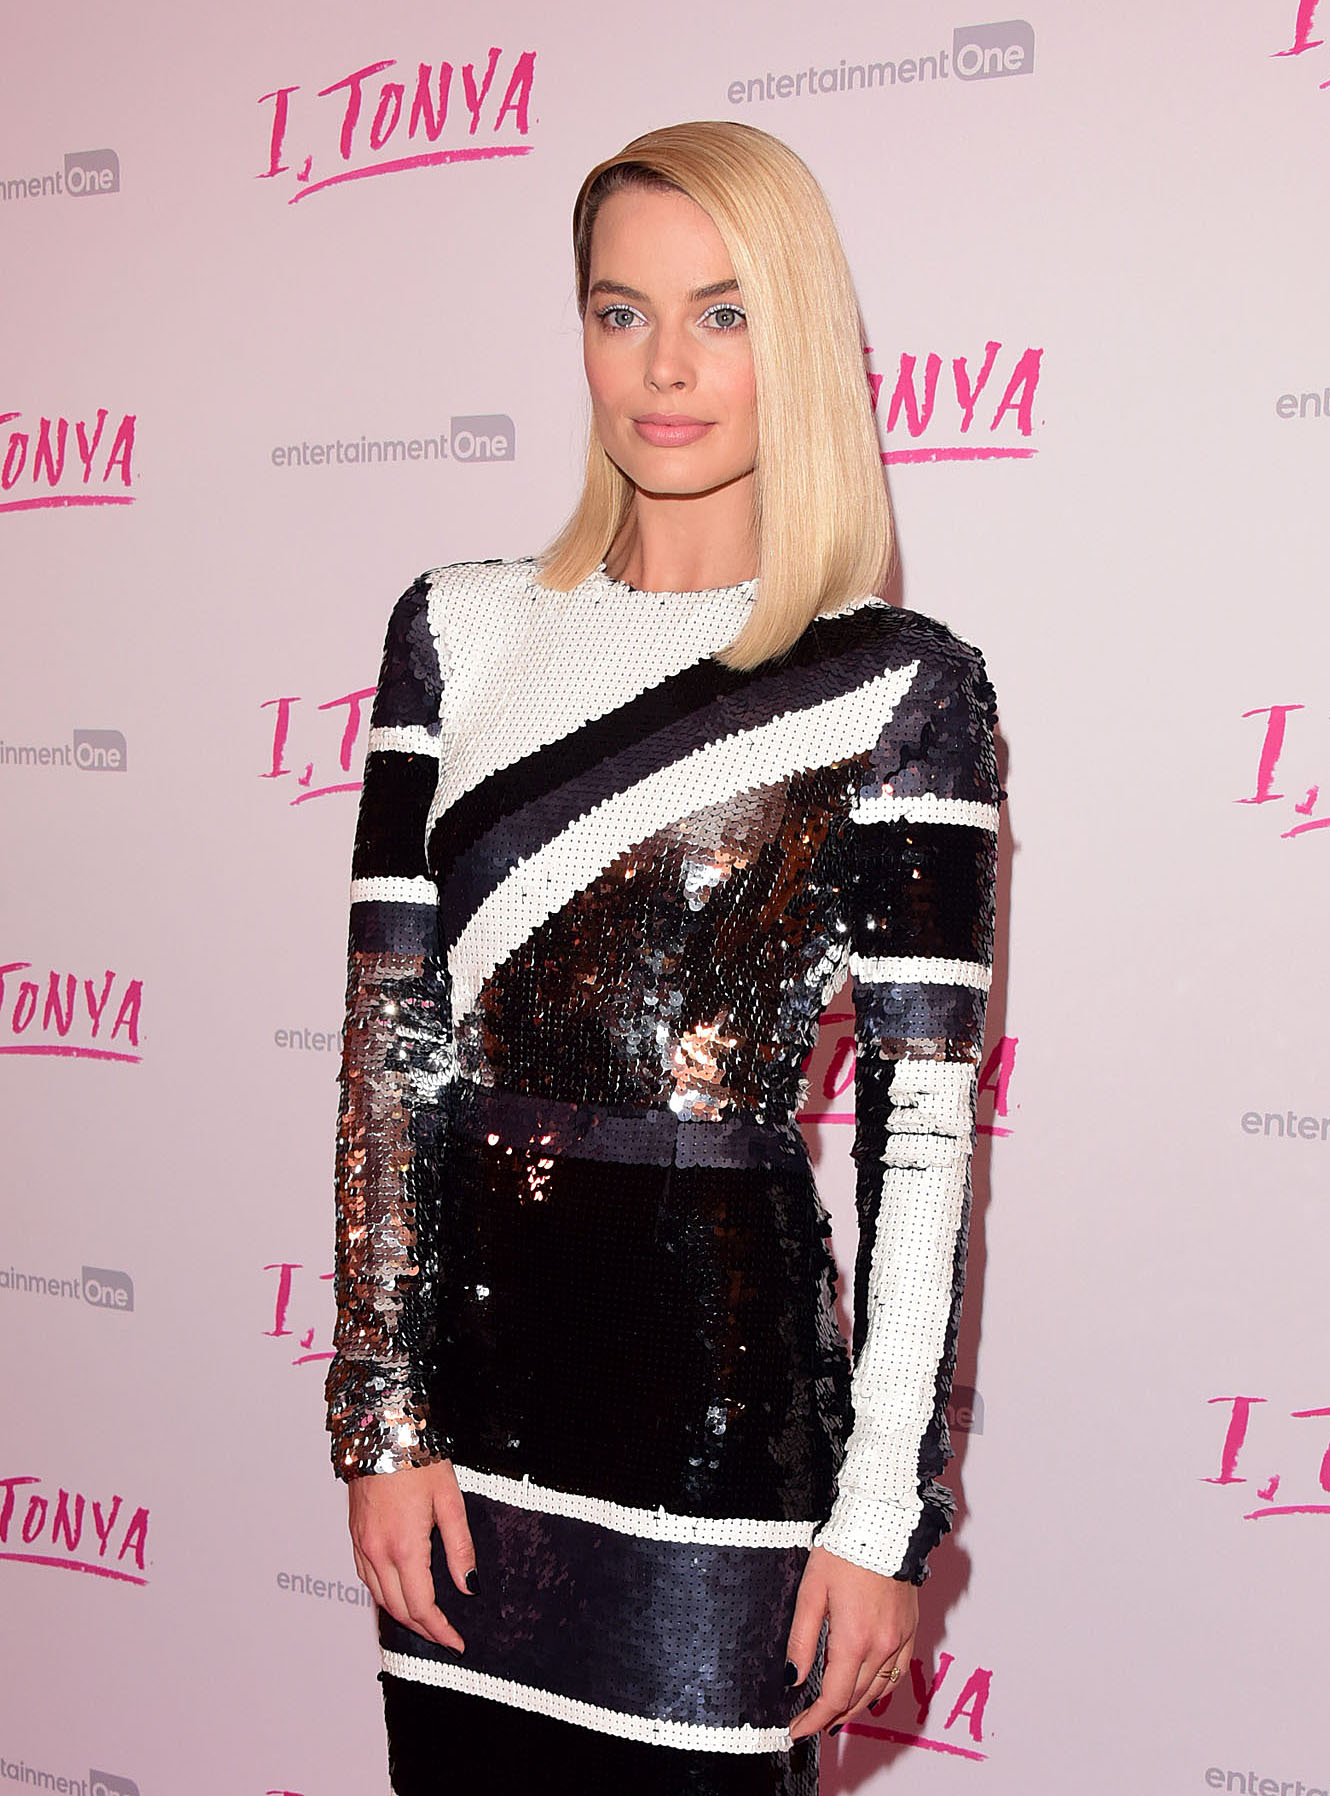 Celebrities arriving at the UK premiere of 'I, TONYA' at the Curzon Mayfair.  <P> Pictured: Margot Robbie <B>Ref: SPL1660390  160218  </B><BR/> Picture by: Splash News<BR/> </P><P> <B>Splash News and Pictures</B><BR/> Los Angeles:310-821-2666<BR/> New York:212-619-2666<BR/> London:870-934-2666<BR/> <span id=